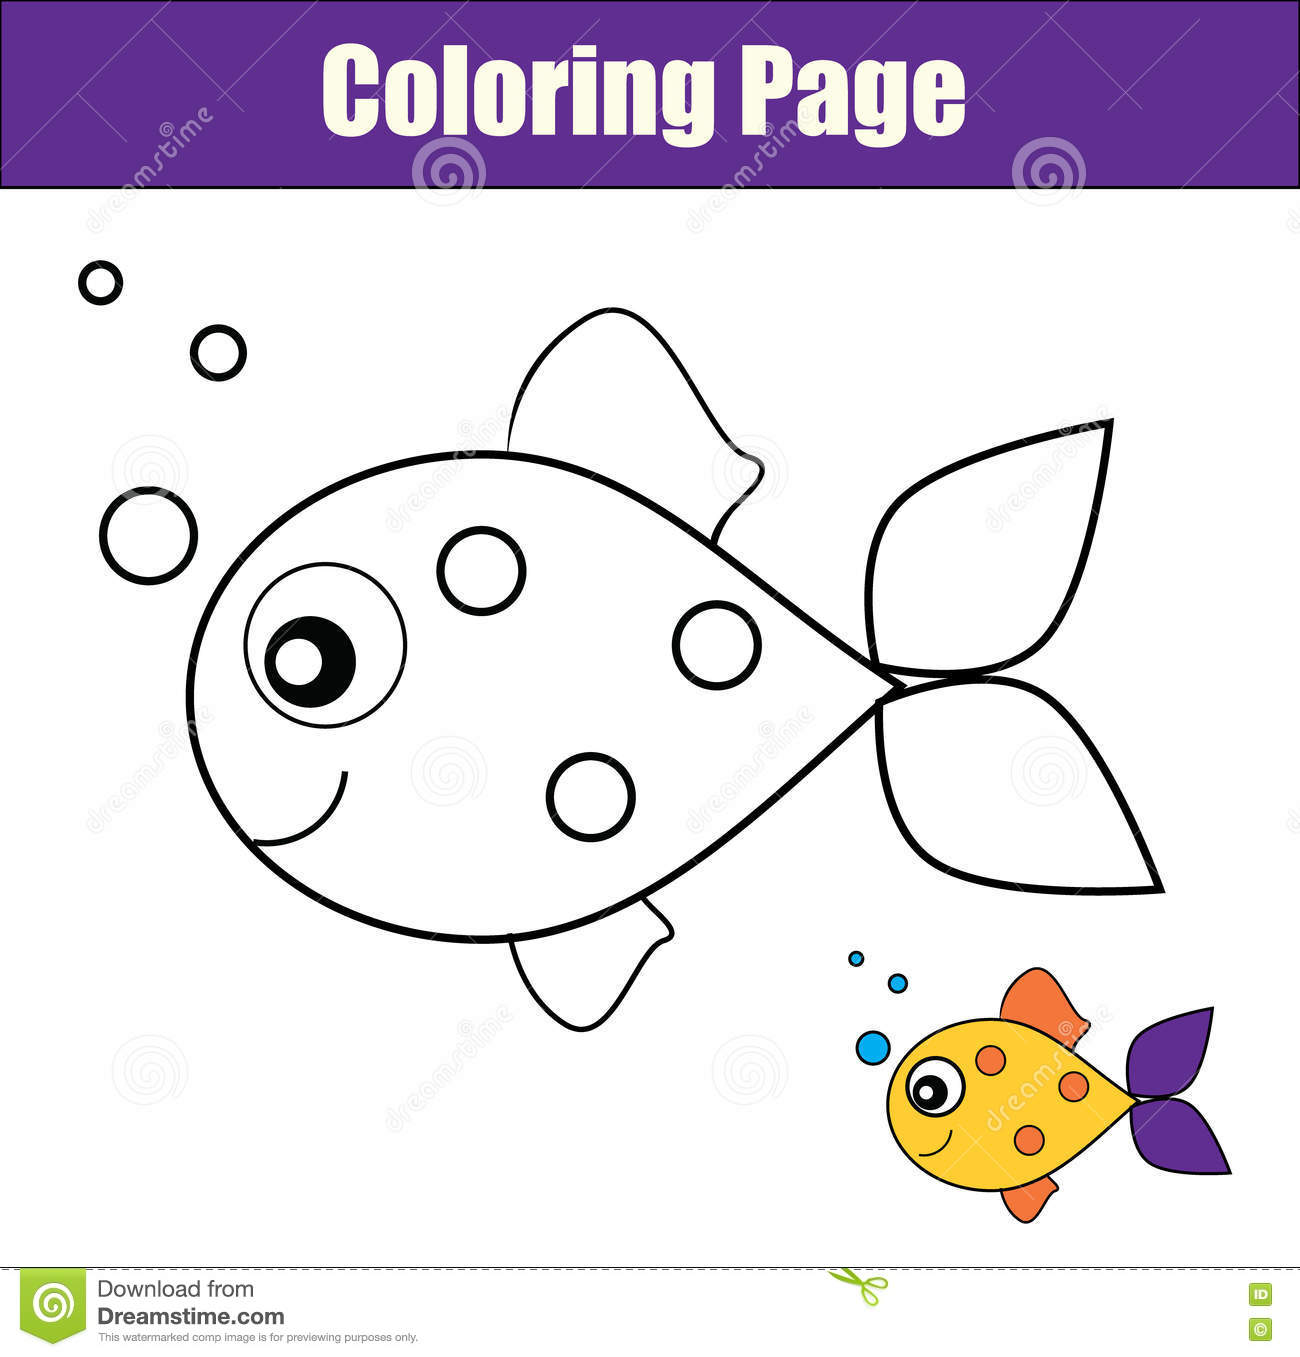 Coloring Page With Fish. Educational Game, Printable ...